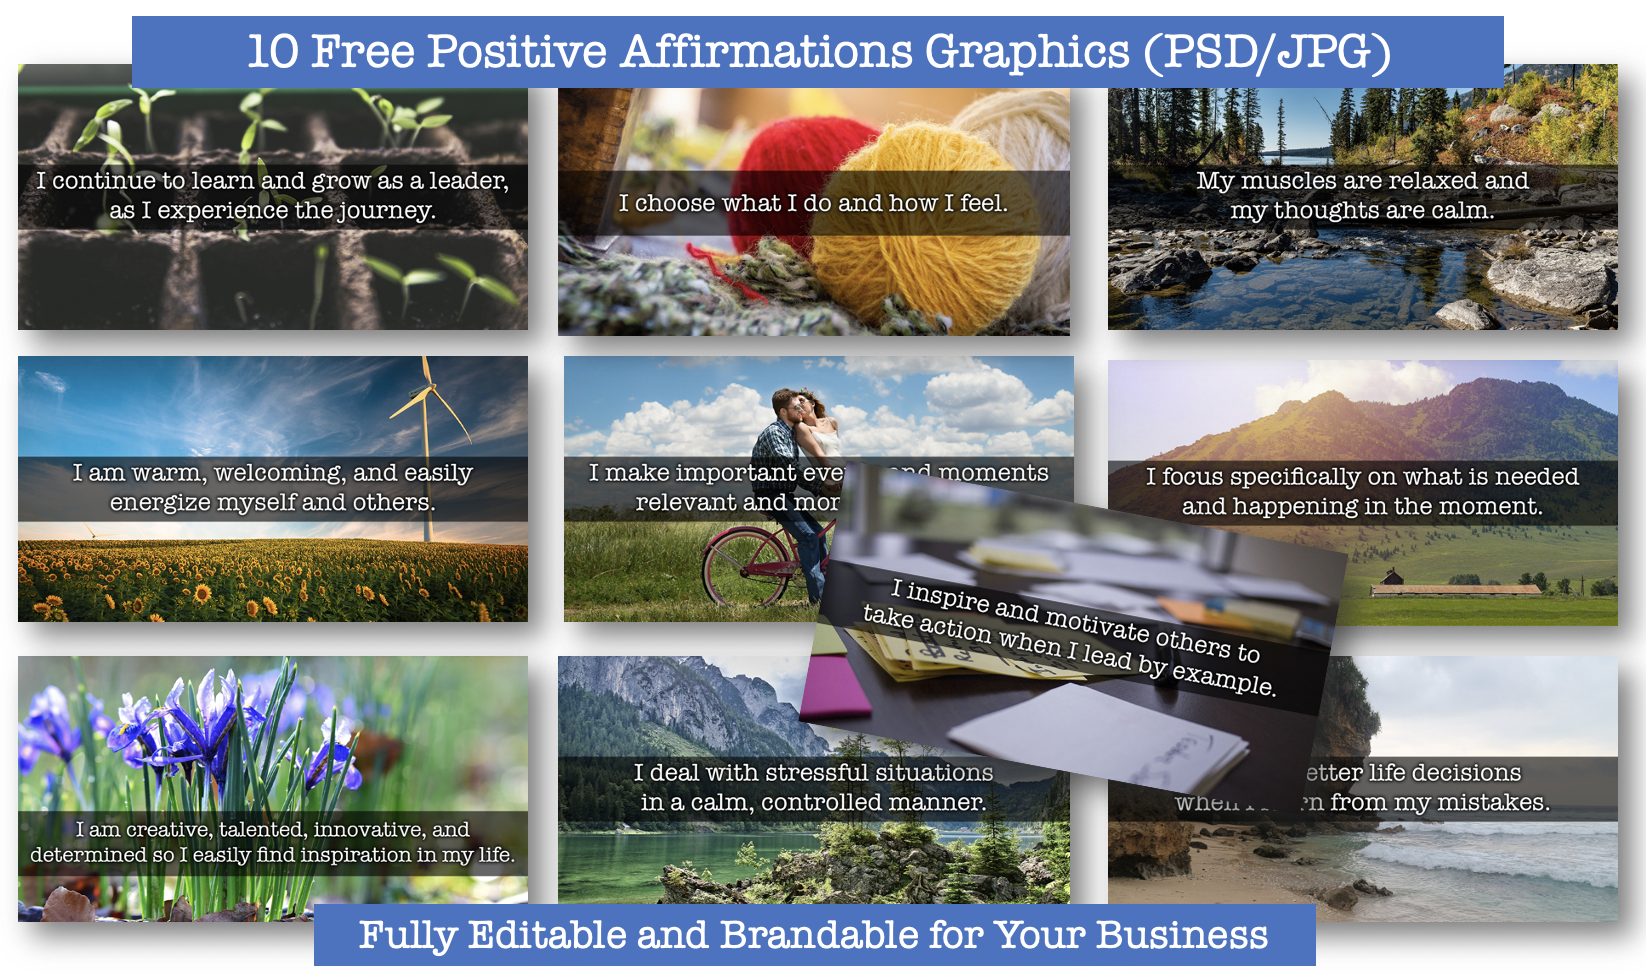 Free Positive Affirmations Graphics with PLR Rights